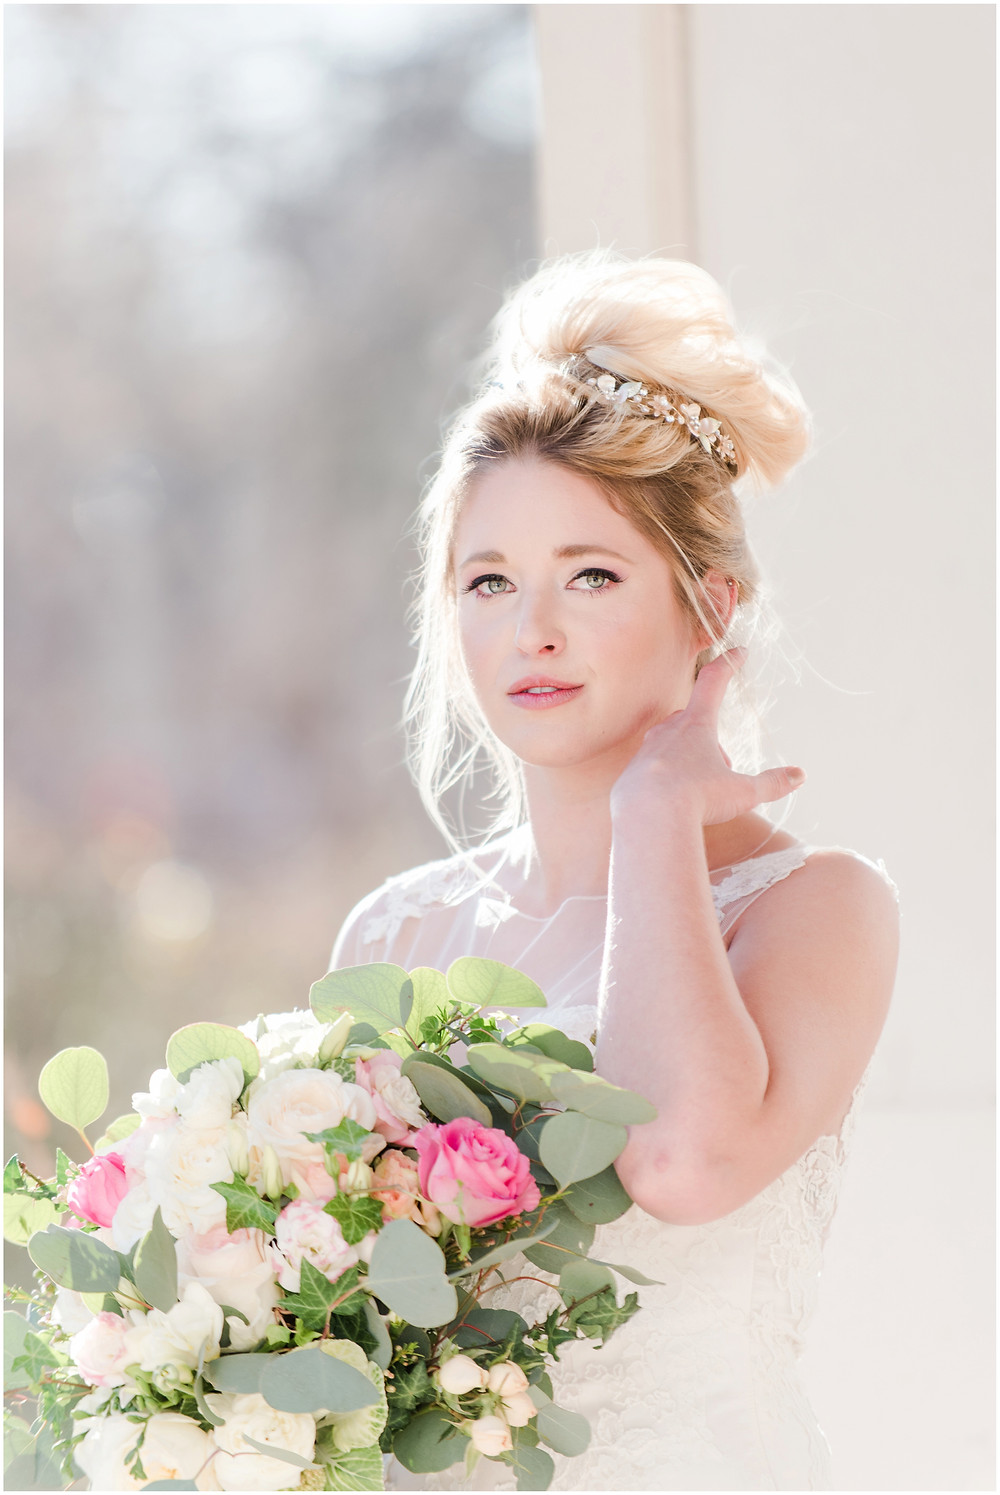 Bridal tiara. Blonde bride. Green eye wedding make up. Big messy bouquet. bouquet with peonies and roses